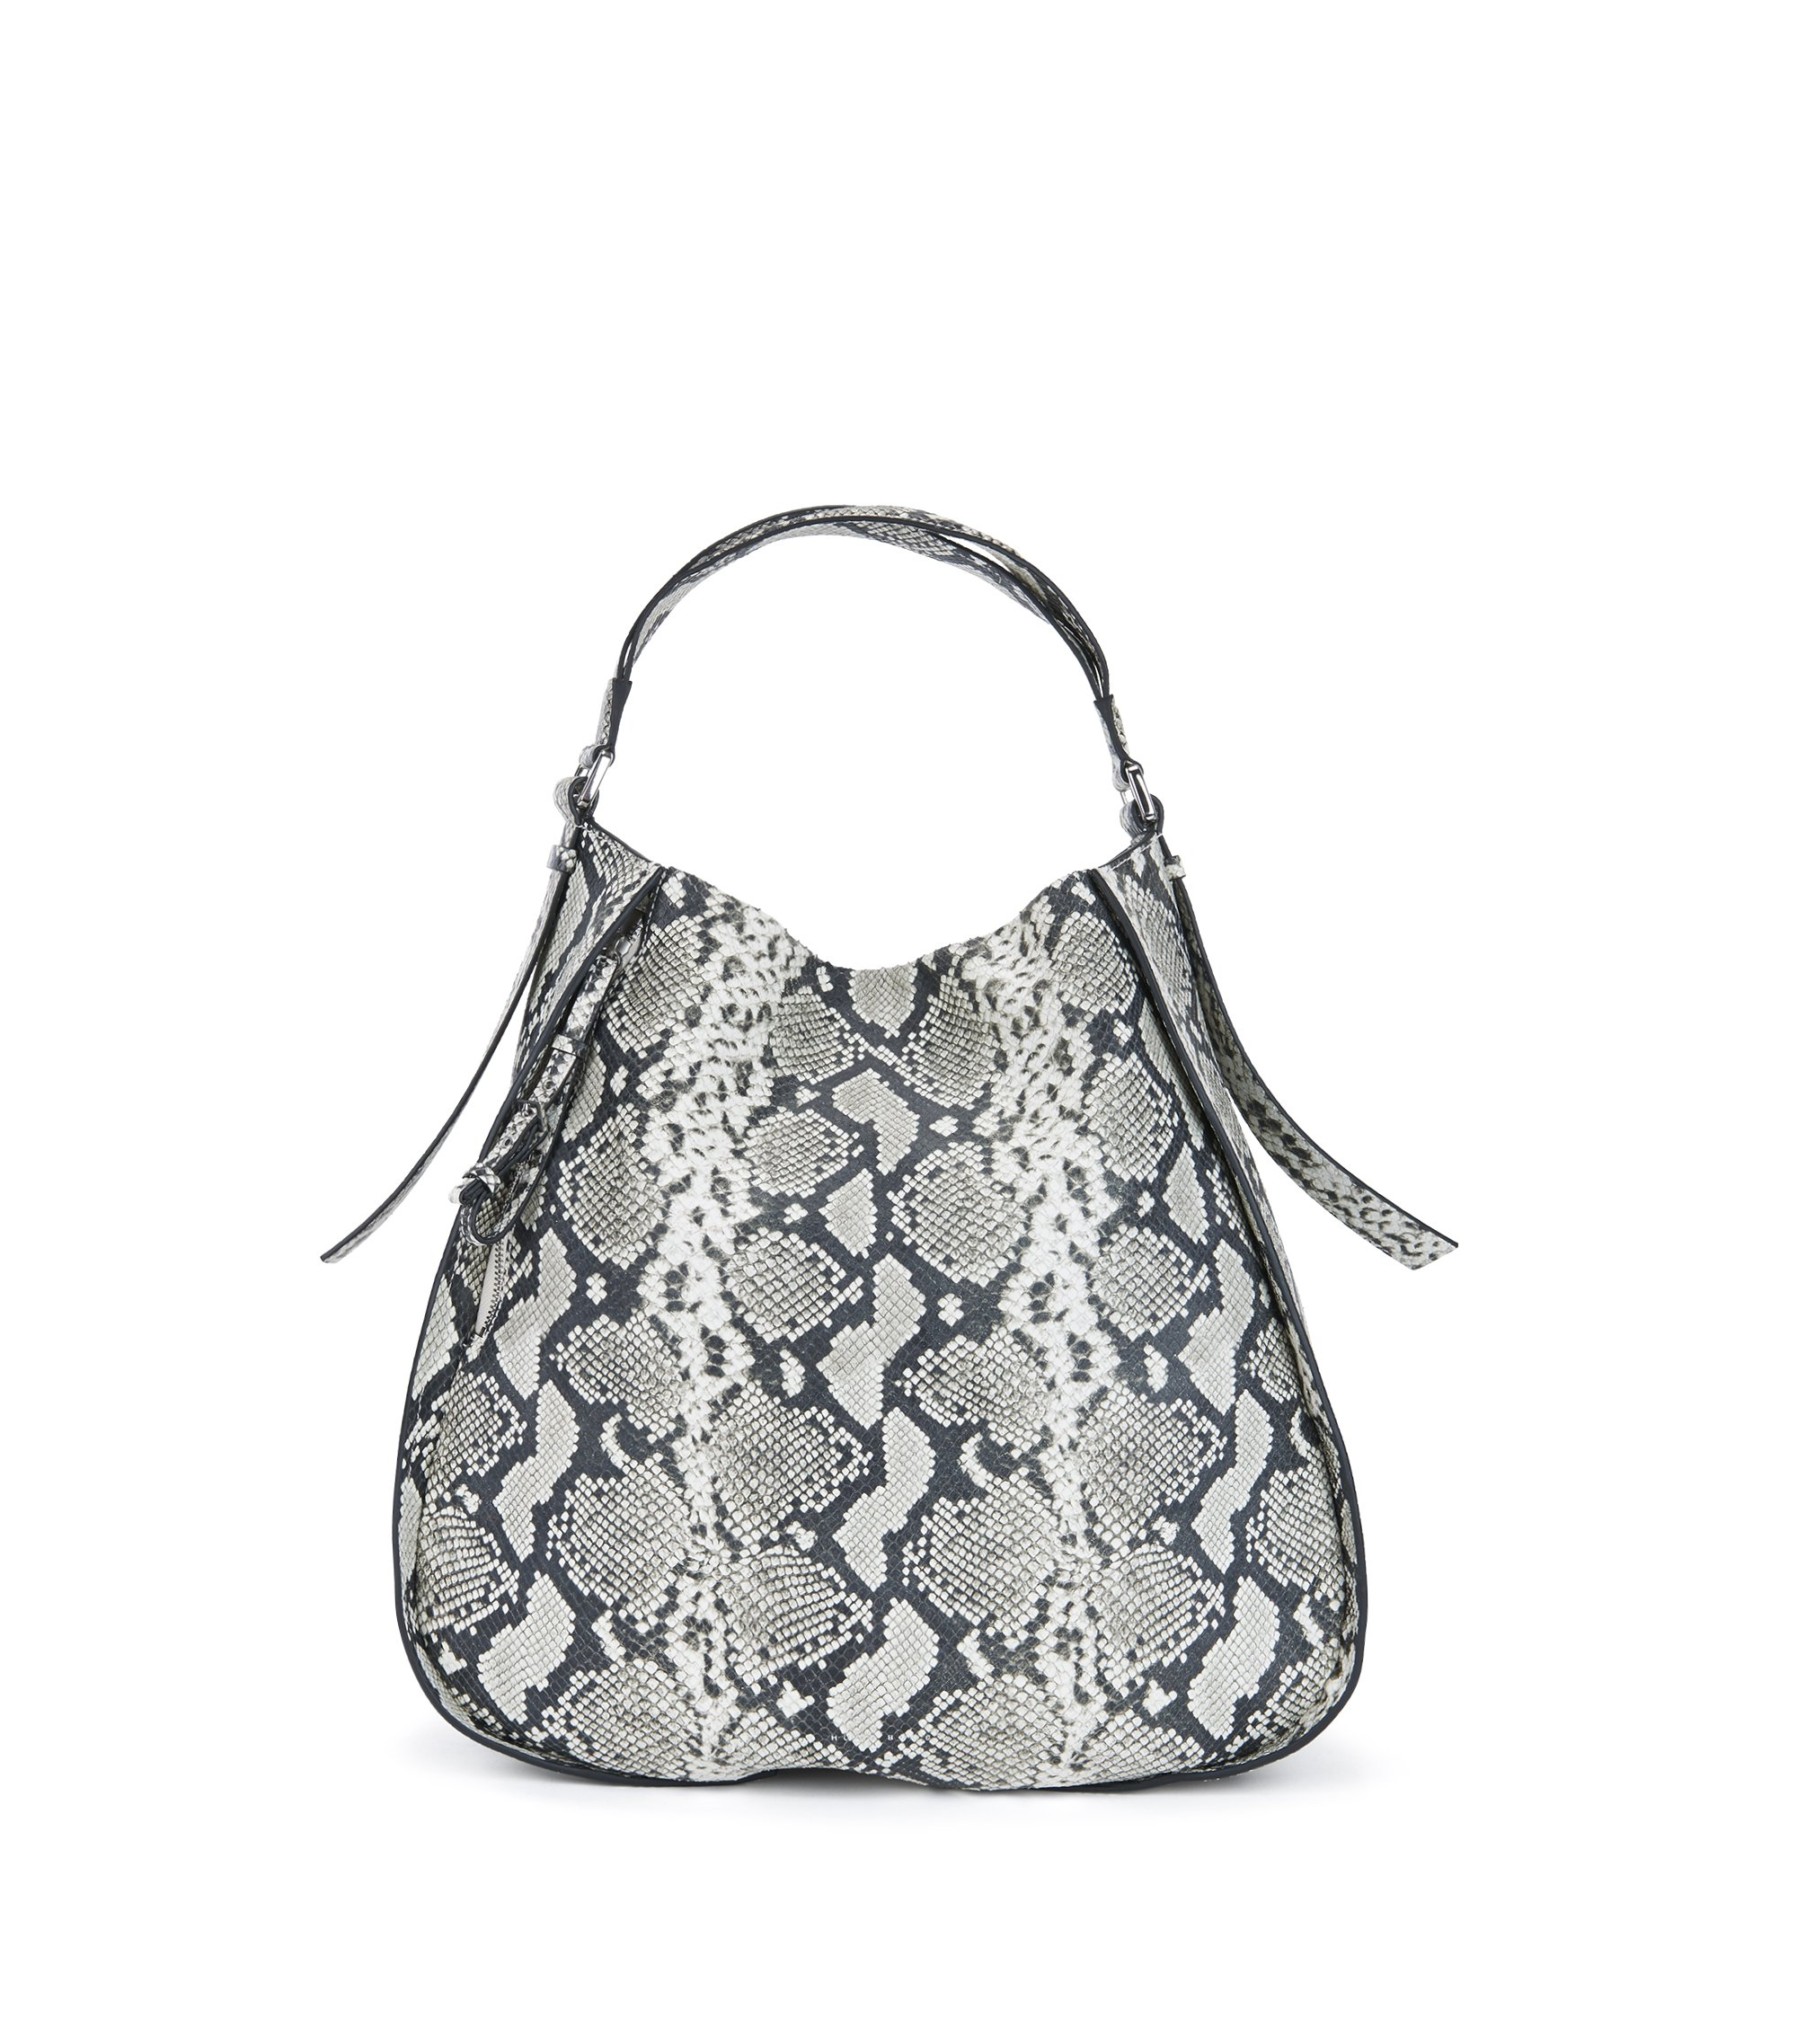 Python-printed hobo bag in Italian leather, Patterned